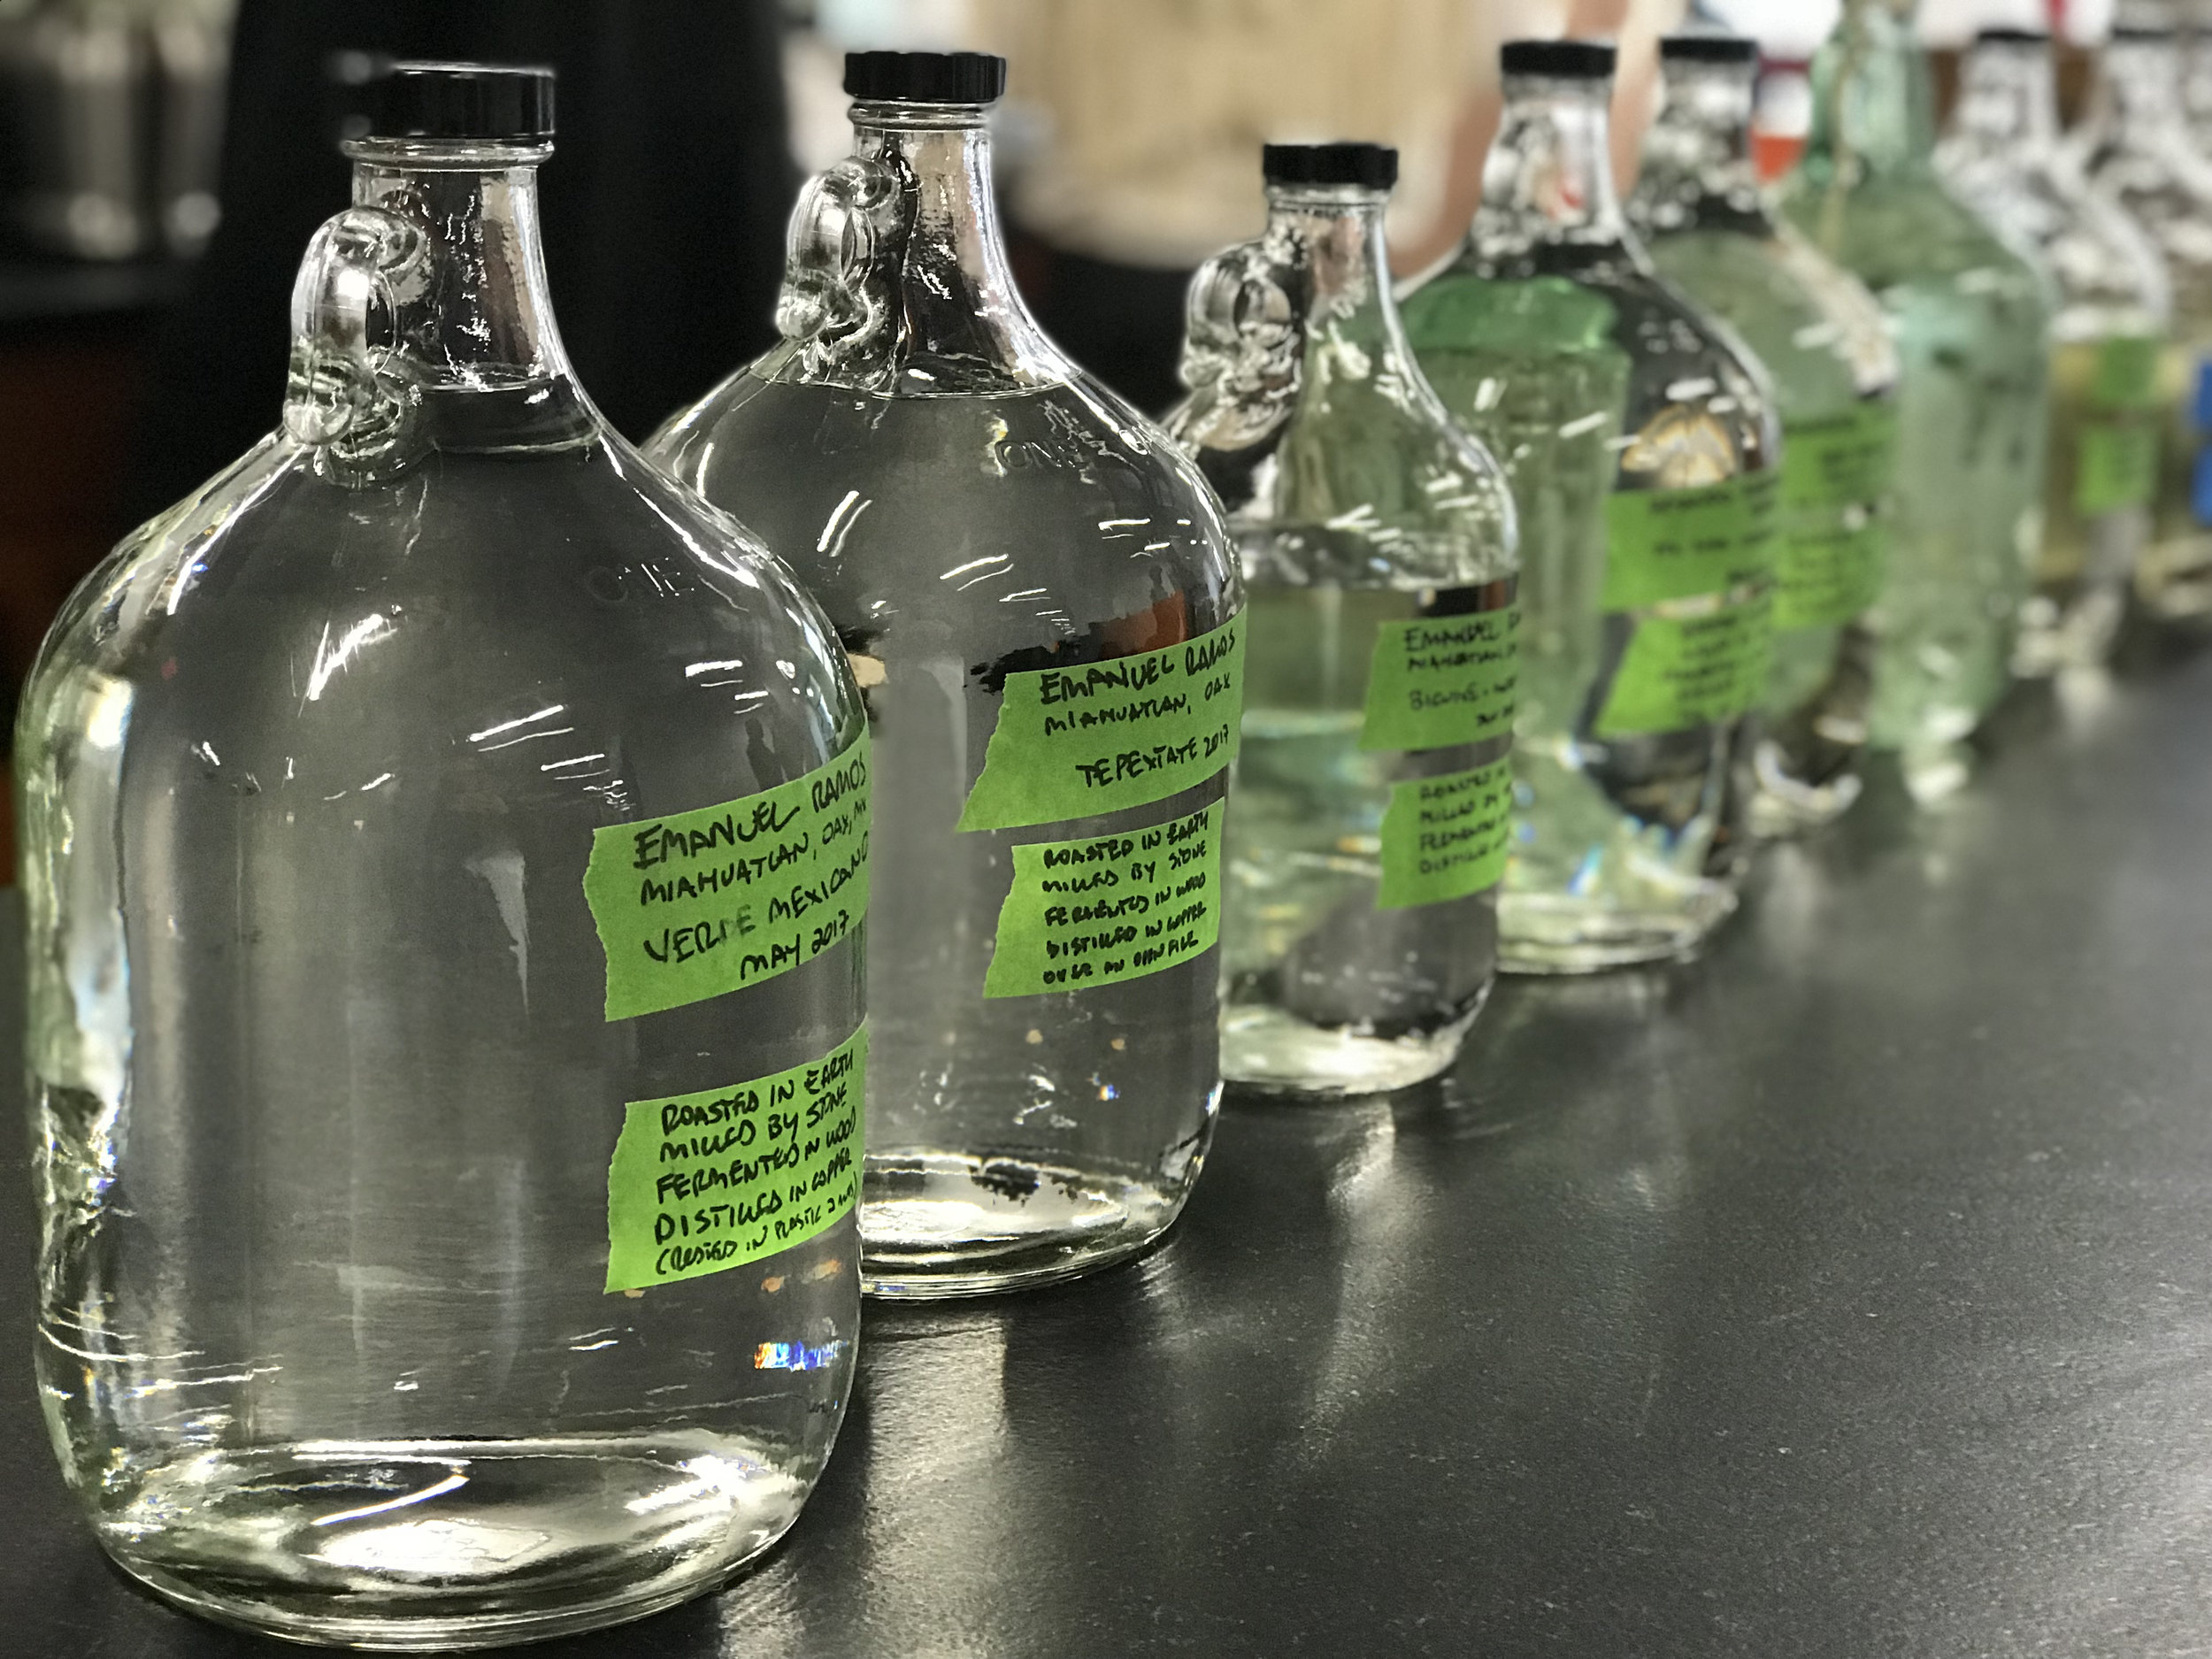 A variety of traditionally produced artisanal mezcals